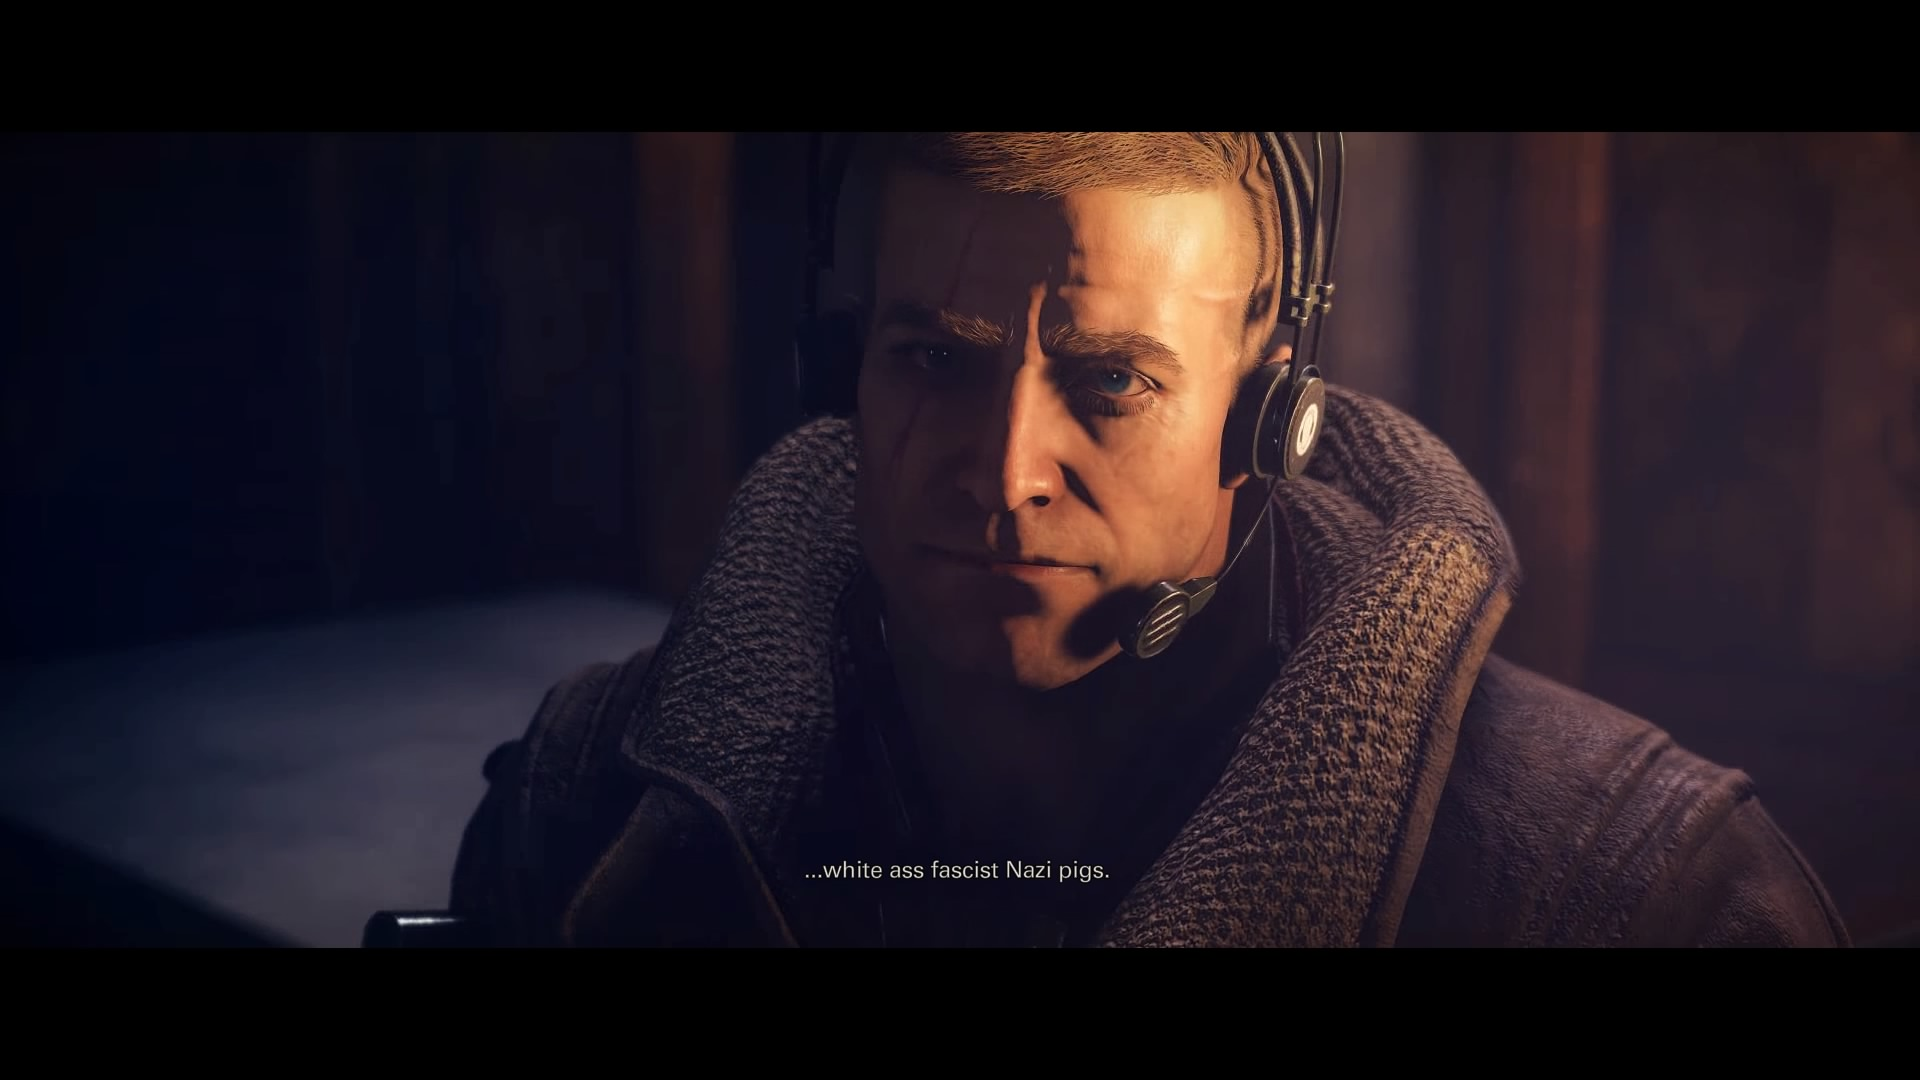 Wolfenstein II: The New Colossus Review – Only Good Nazi is a Dead Nazi